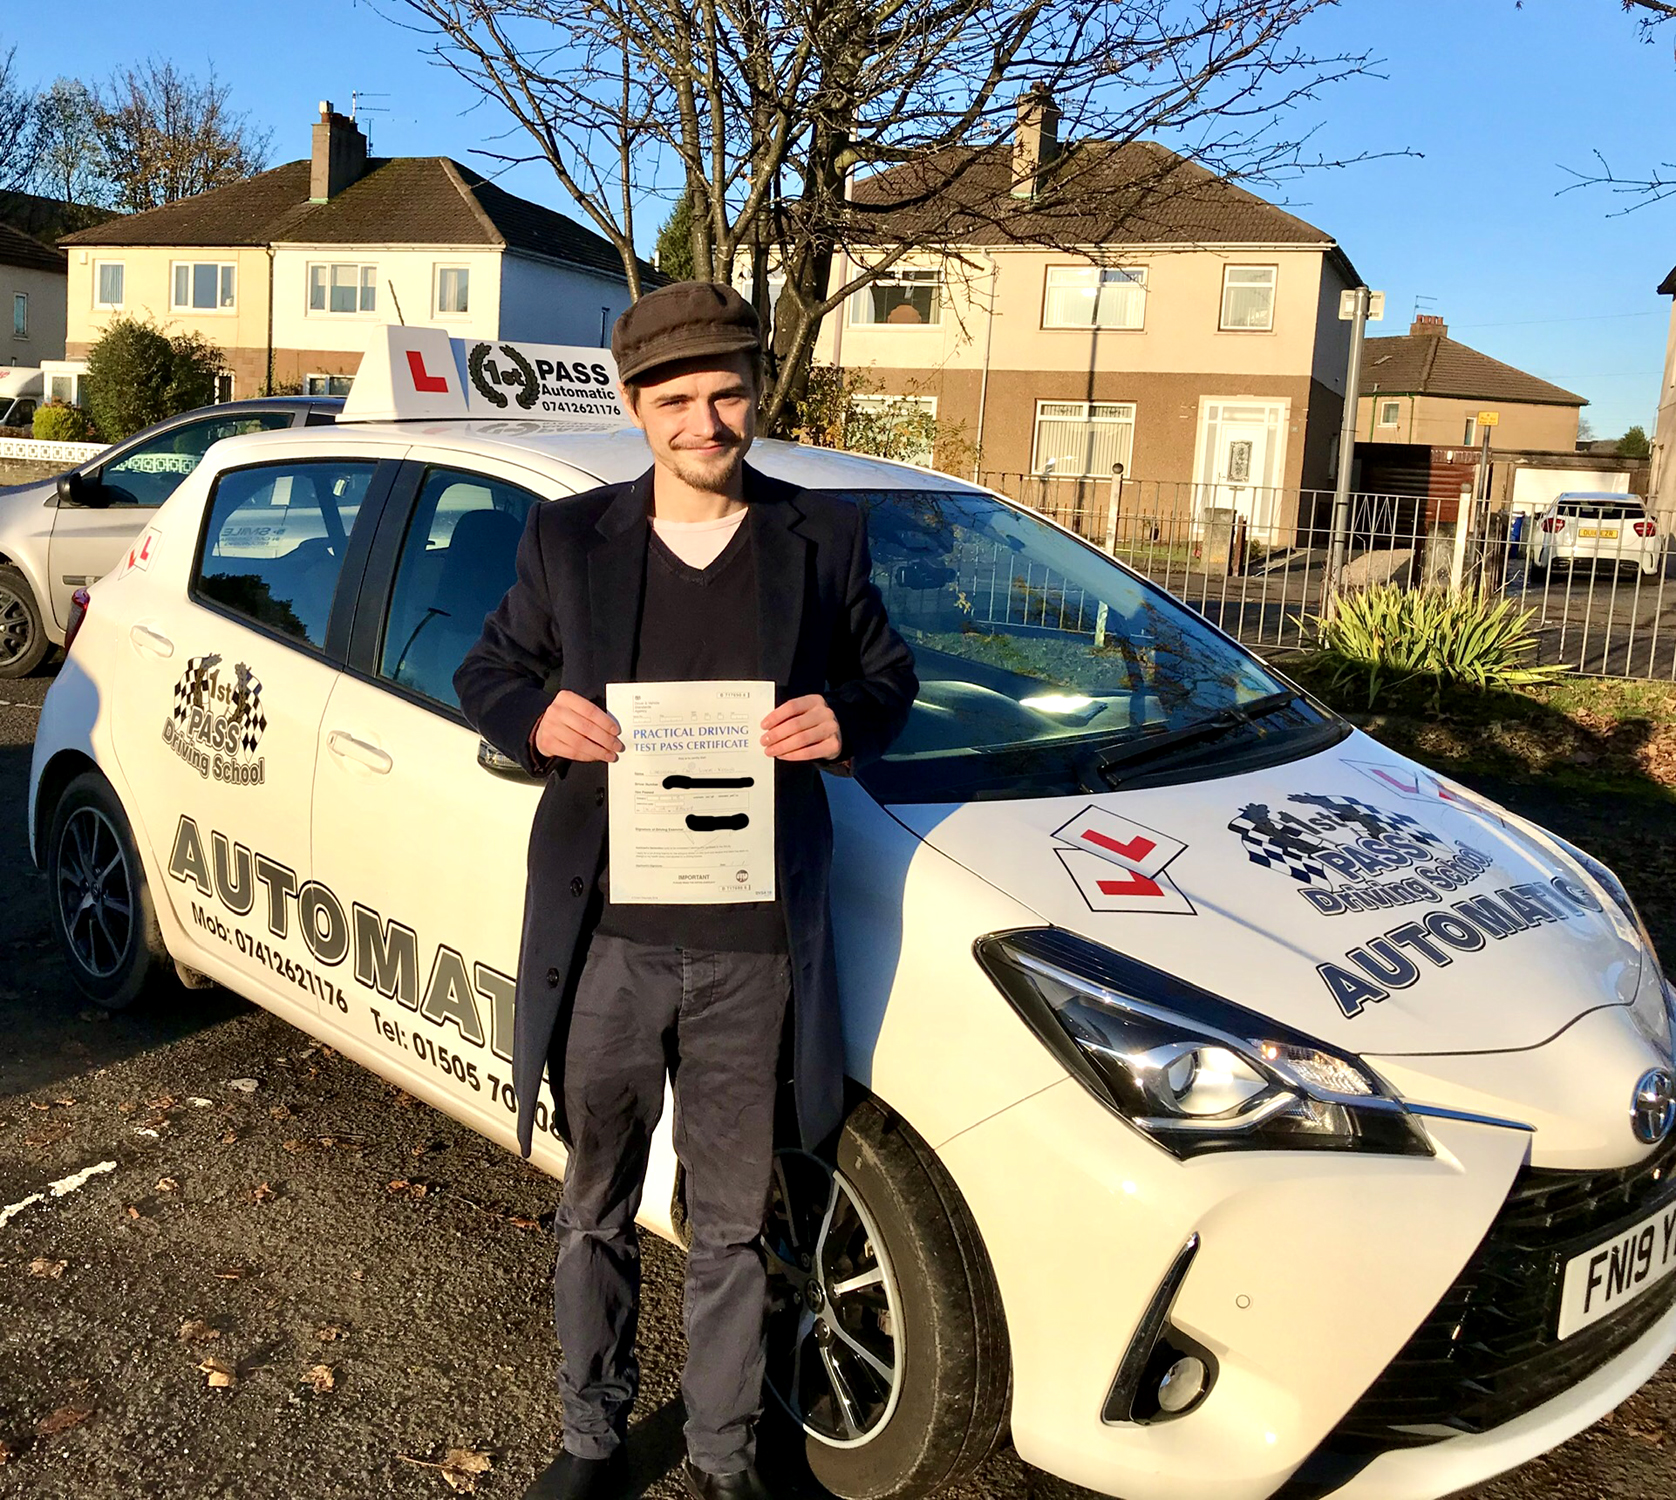 Chris - took driving lessons with 1st Pass Driving School – Renfrewshire's Automatic Driving School